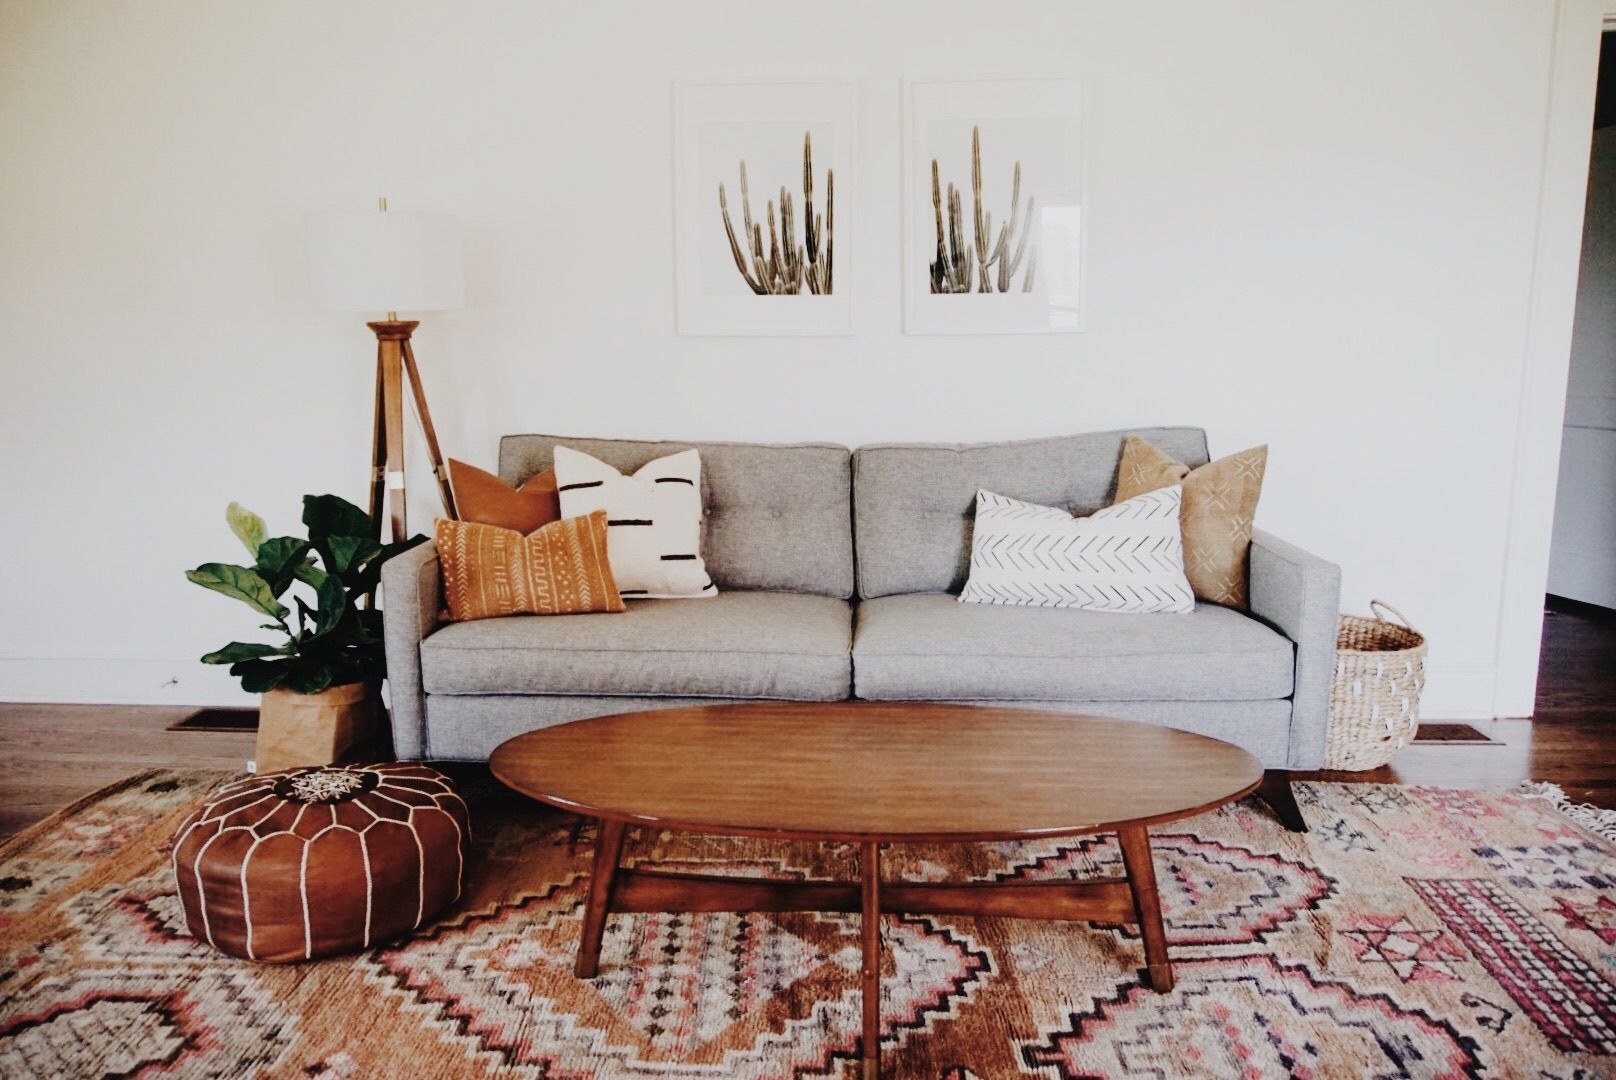 Boho Midcentury Modern Living Room Mid Century Living Room Decor Mid Century Modern Living Room Mid Century Living Room